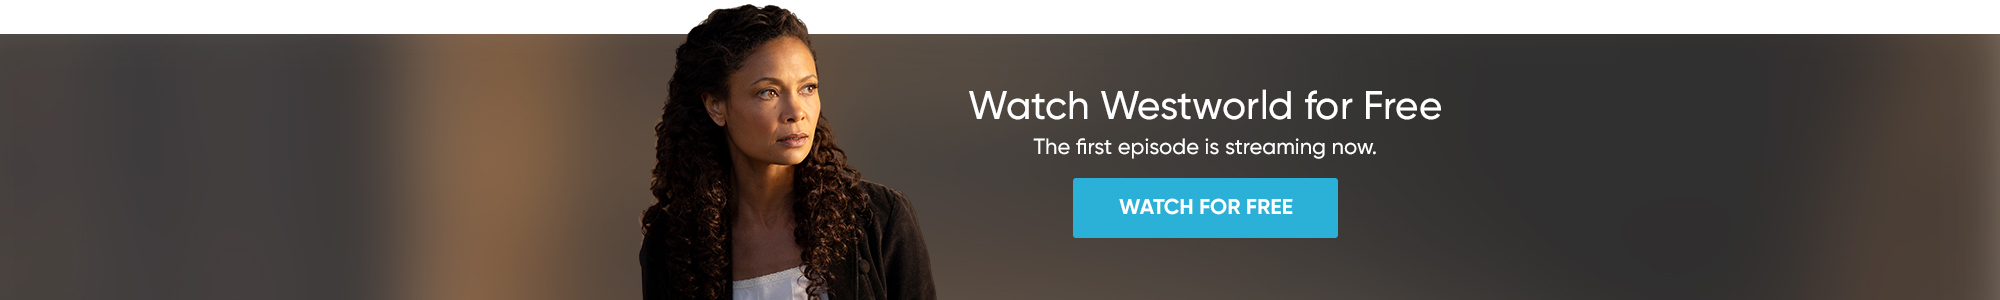 Watch Westworld for Free